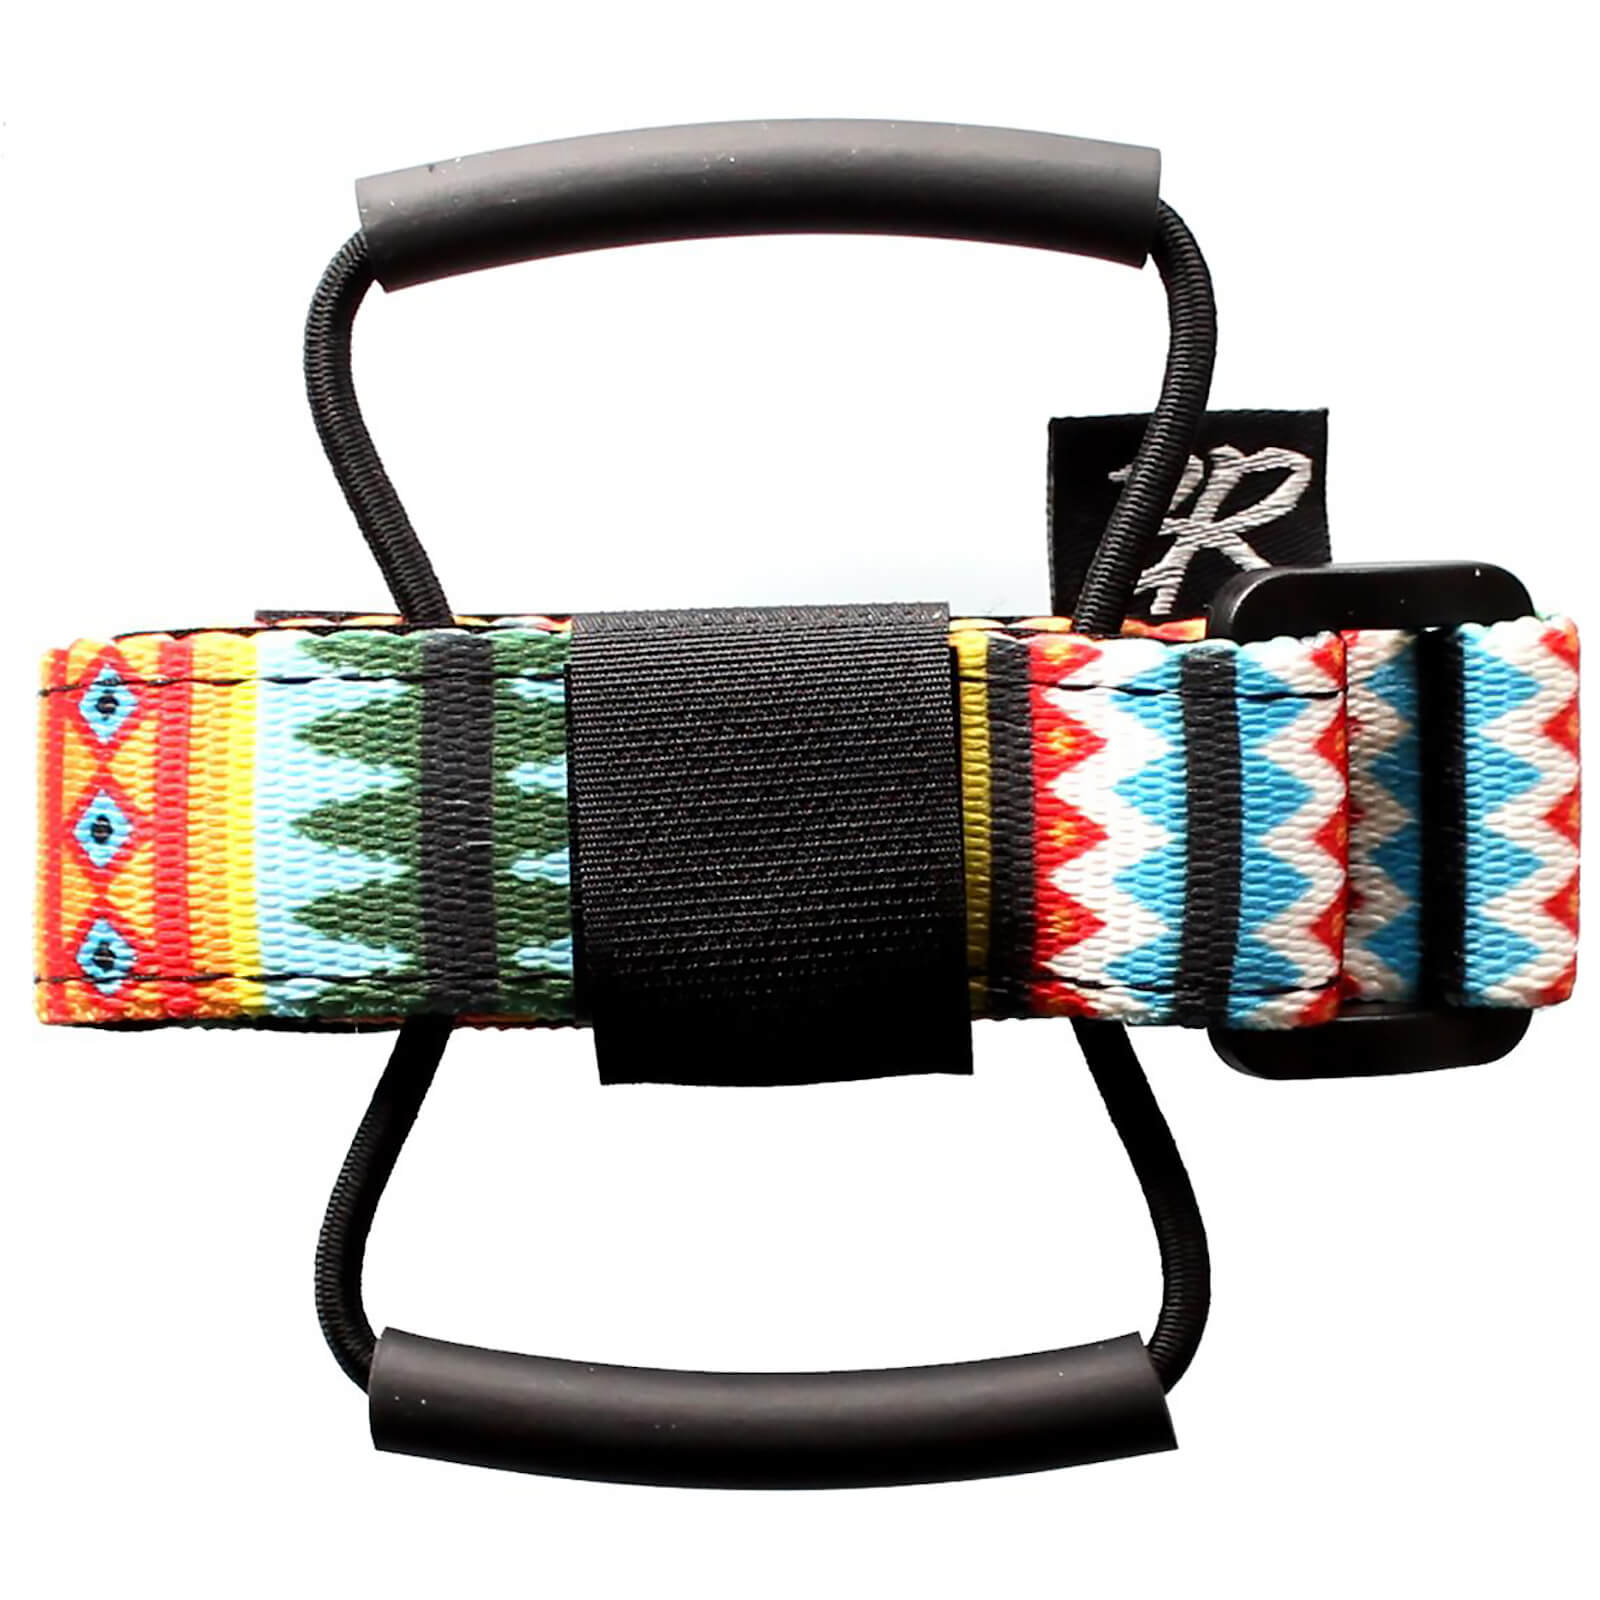 BackCountry Race Strap - Pines